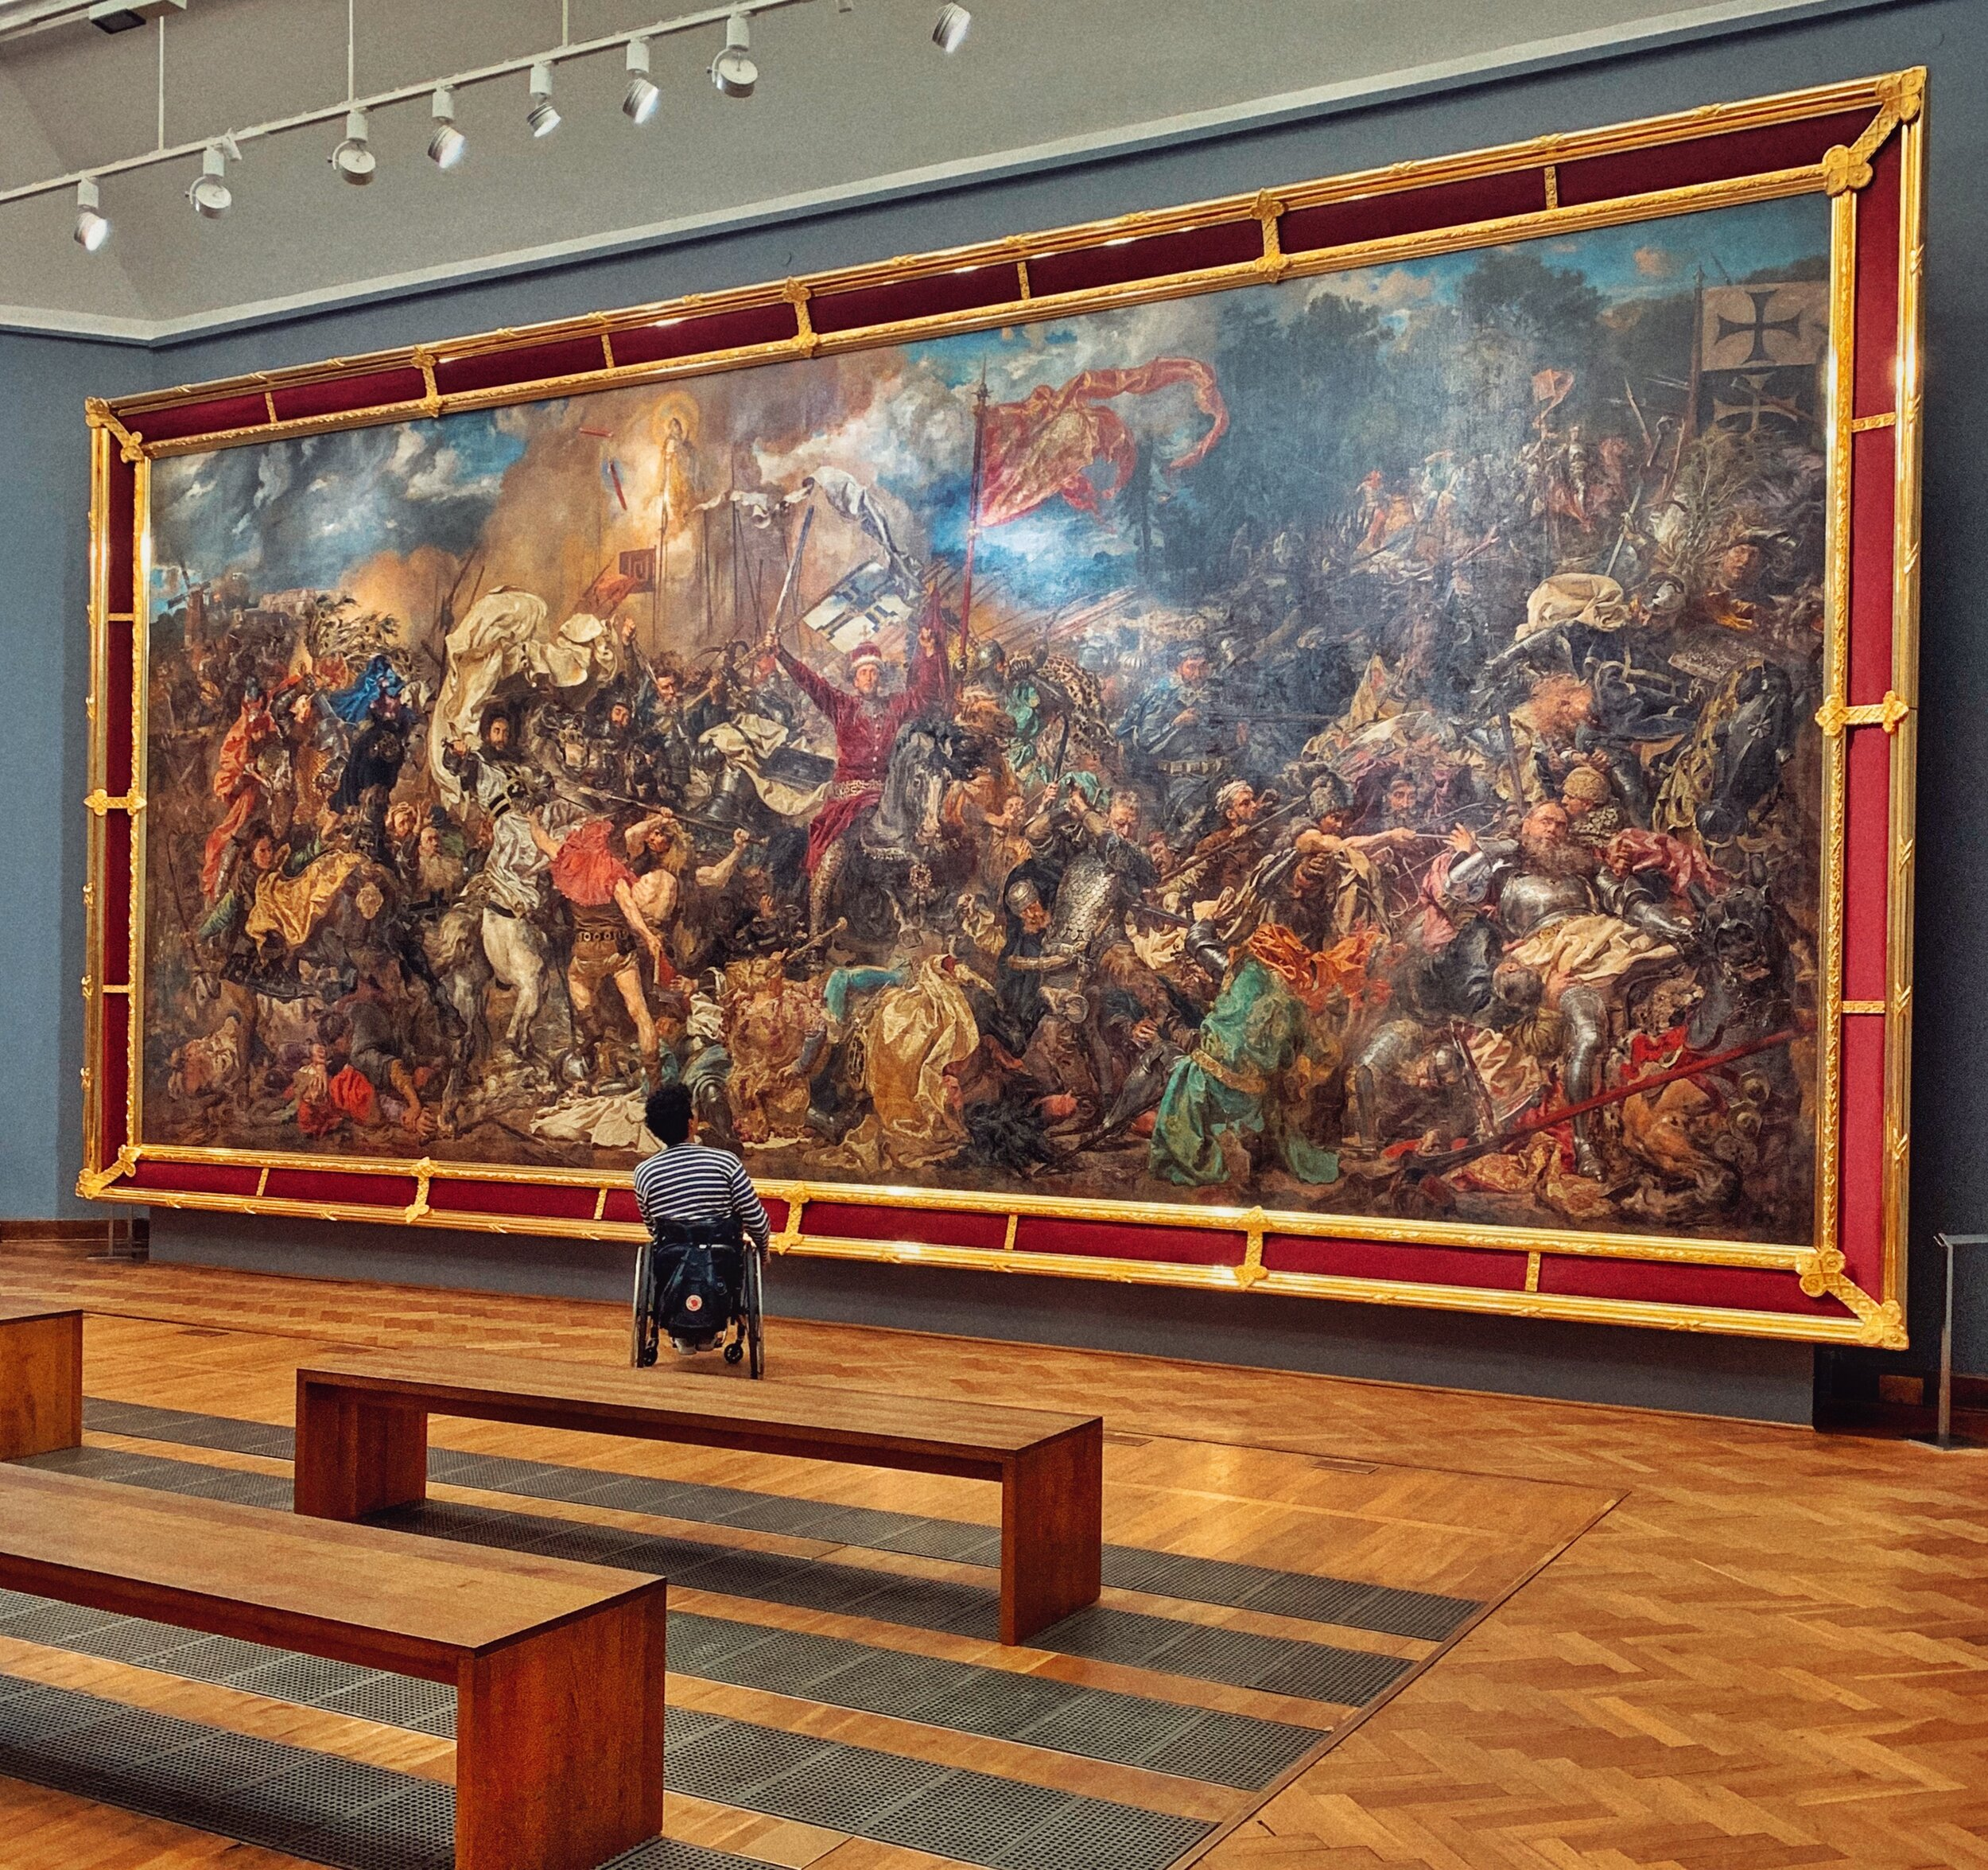 To discover Polish art including 19th-century masters such as Jan Matejko – known for his large-scale historic Battle of Grunwald painting (425cm x 987cm) – and contemporary artists such as Wilhelm Sasnal, head to Warsaw's National Museum. Here, you'll find over 830,000 works dating from ancient times until the present from both Polish and international artists.      Click on the picture for a full review.